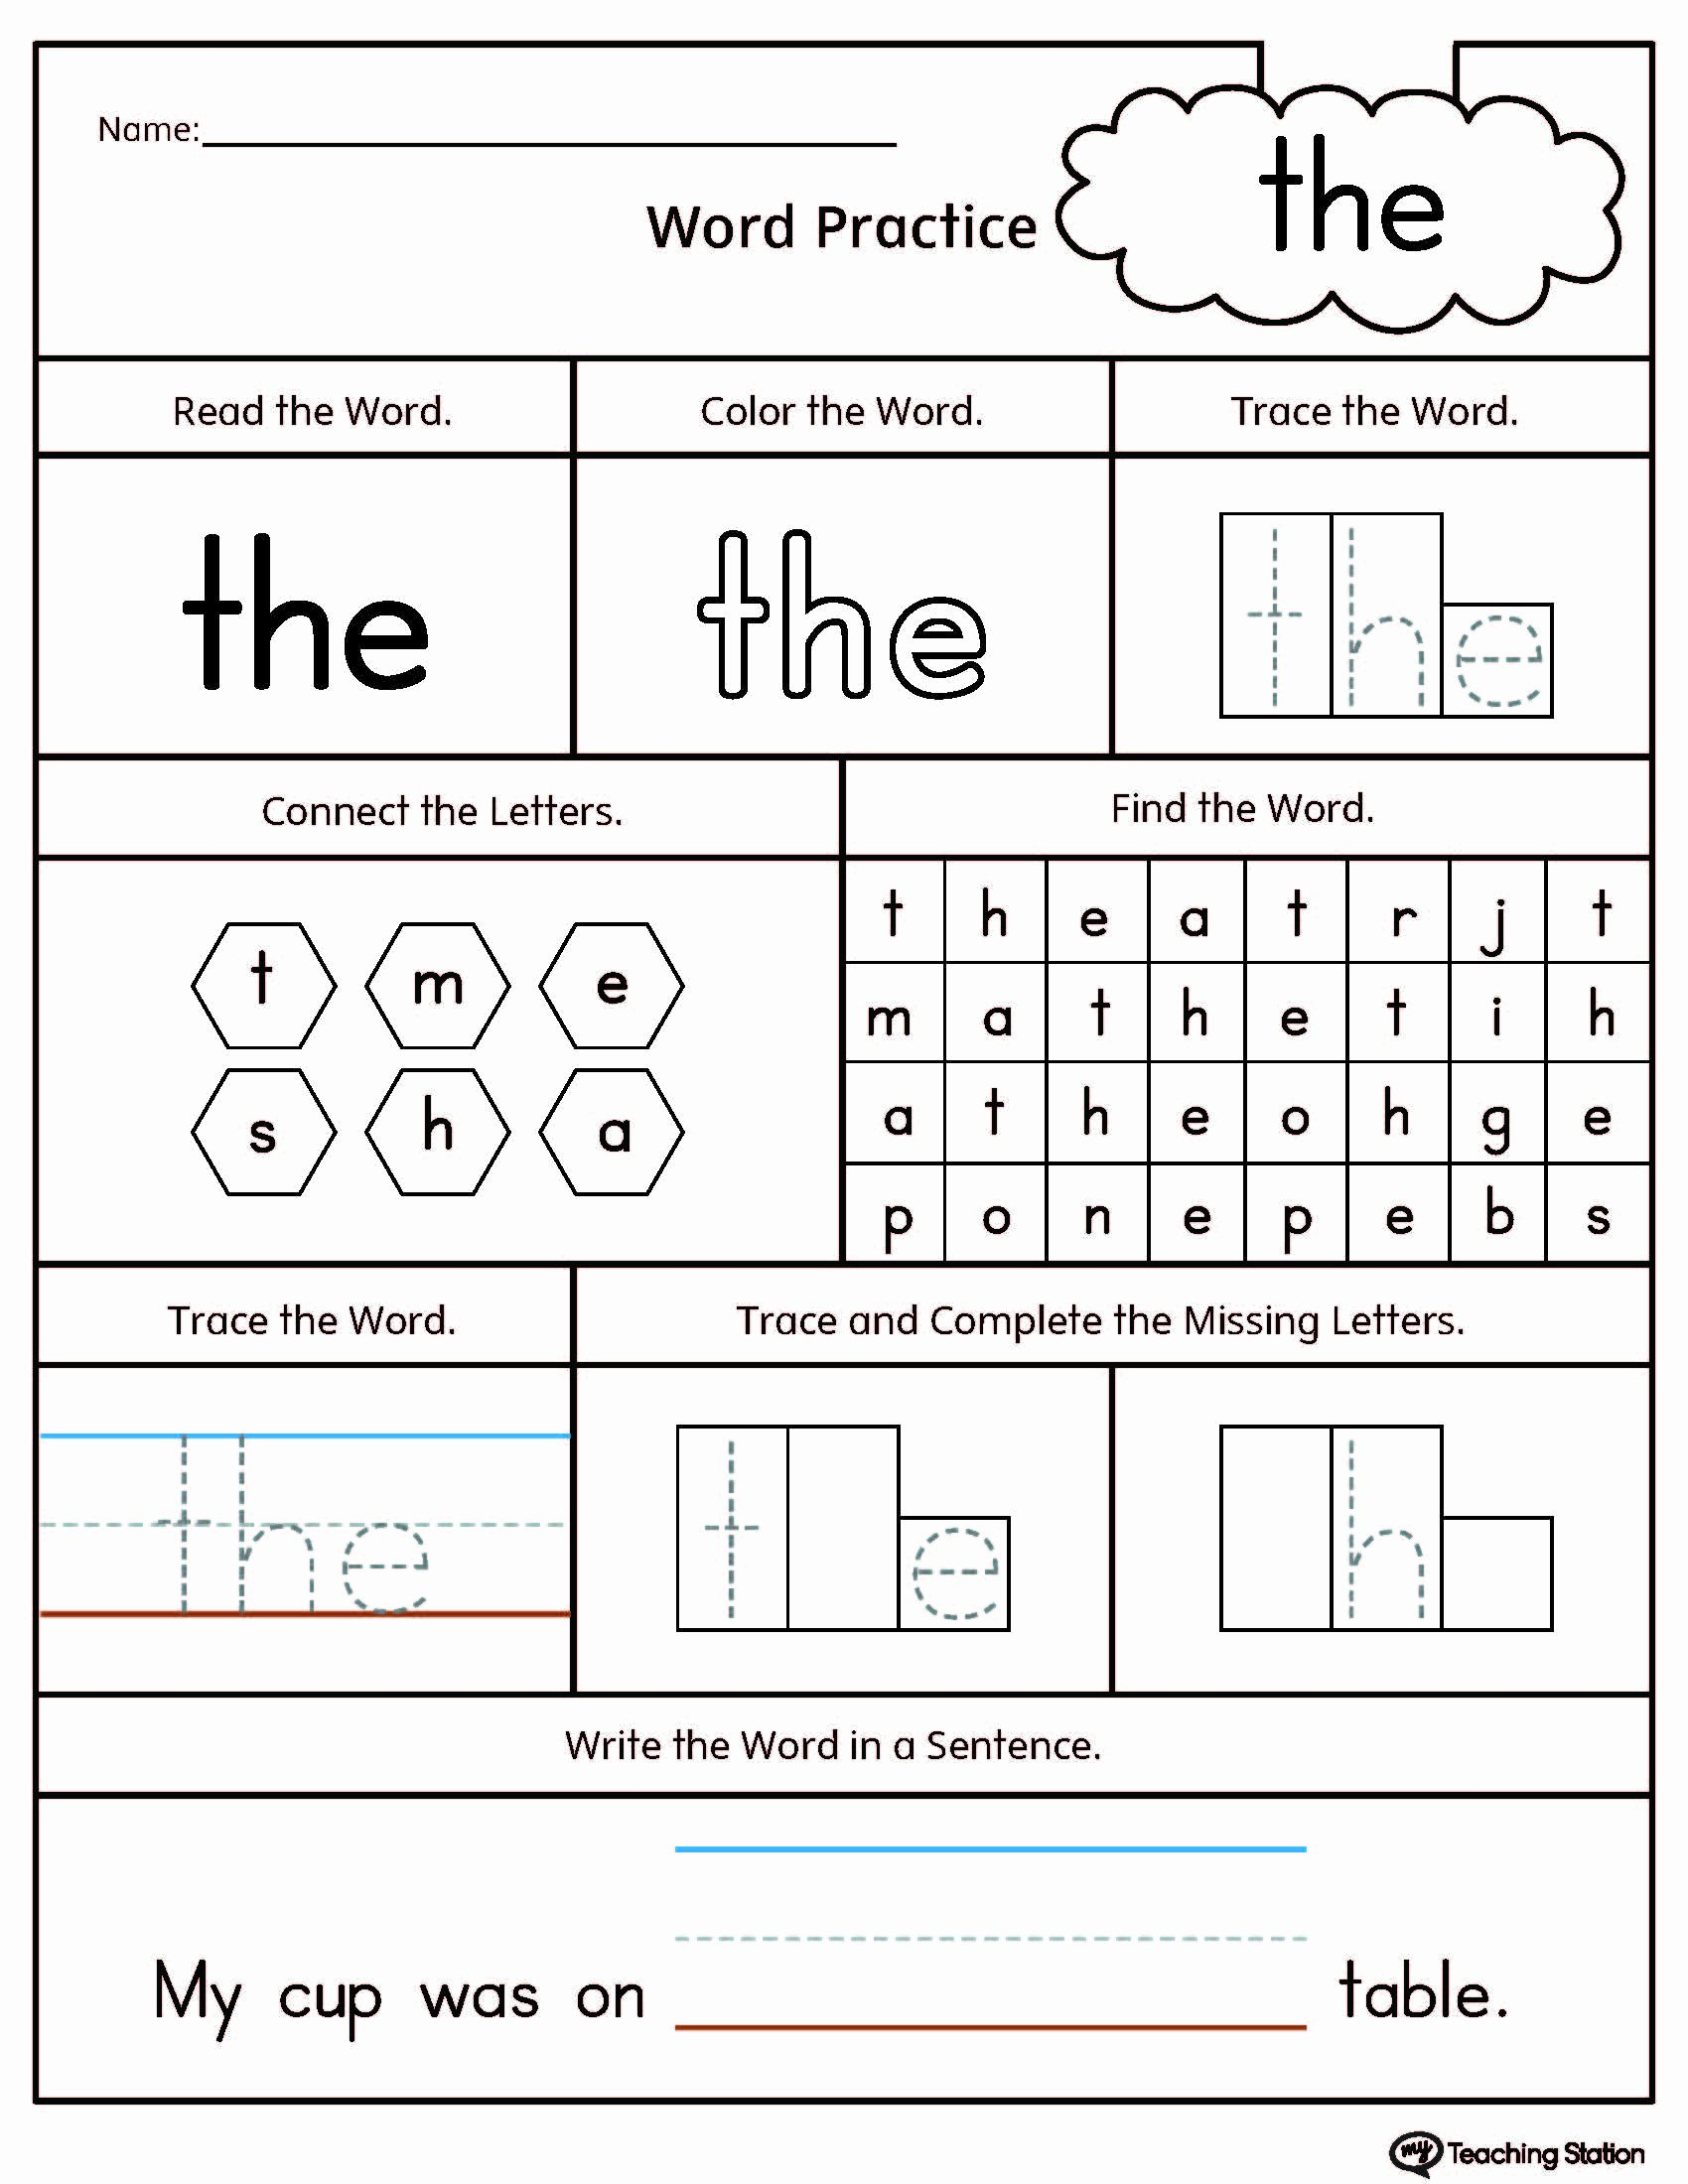 Sight Words Worksheets for Preschoolers Best Of Sight Word the Printable Worksheet